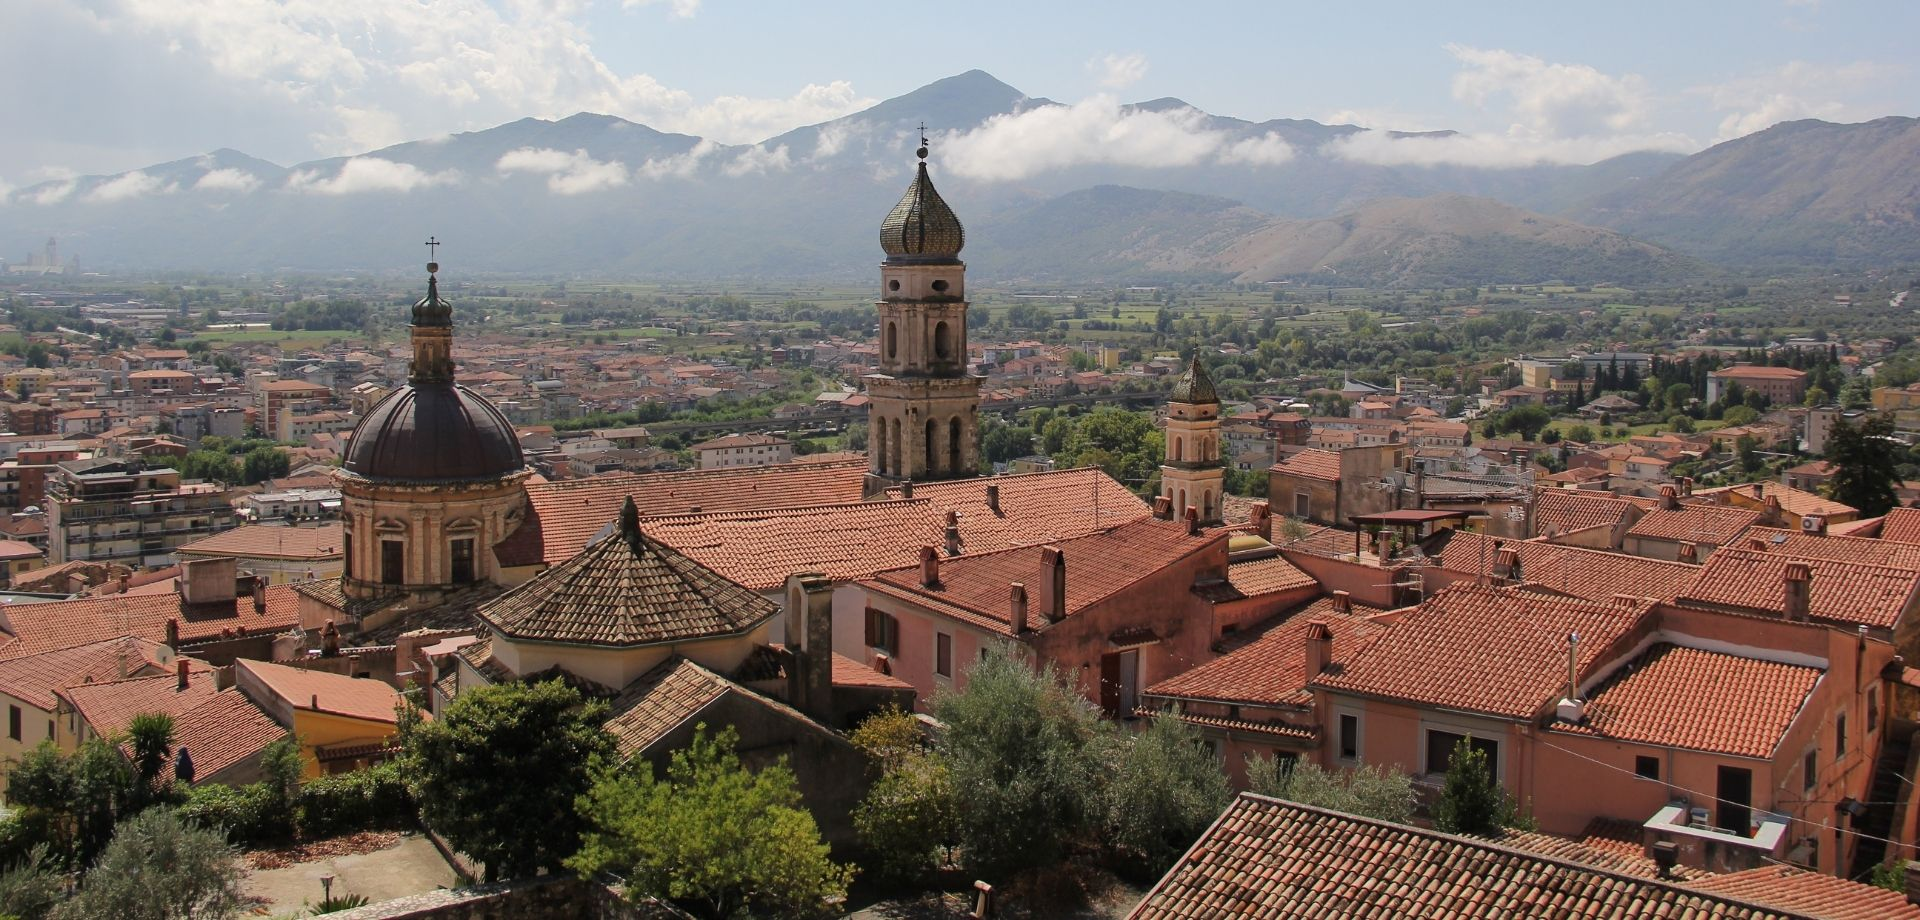 Between ancient castles and towns in Molise